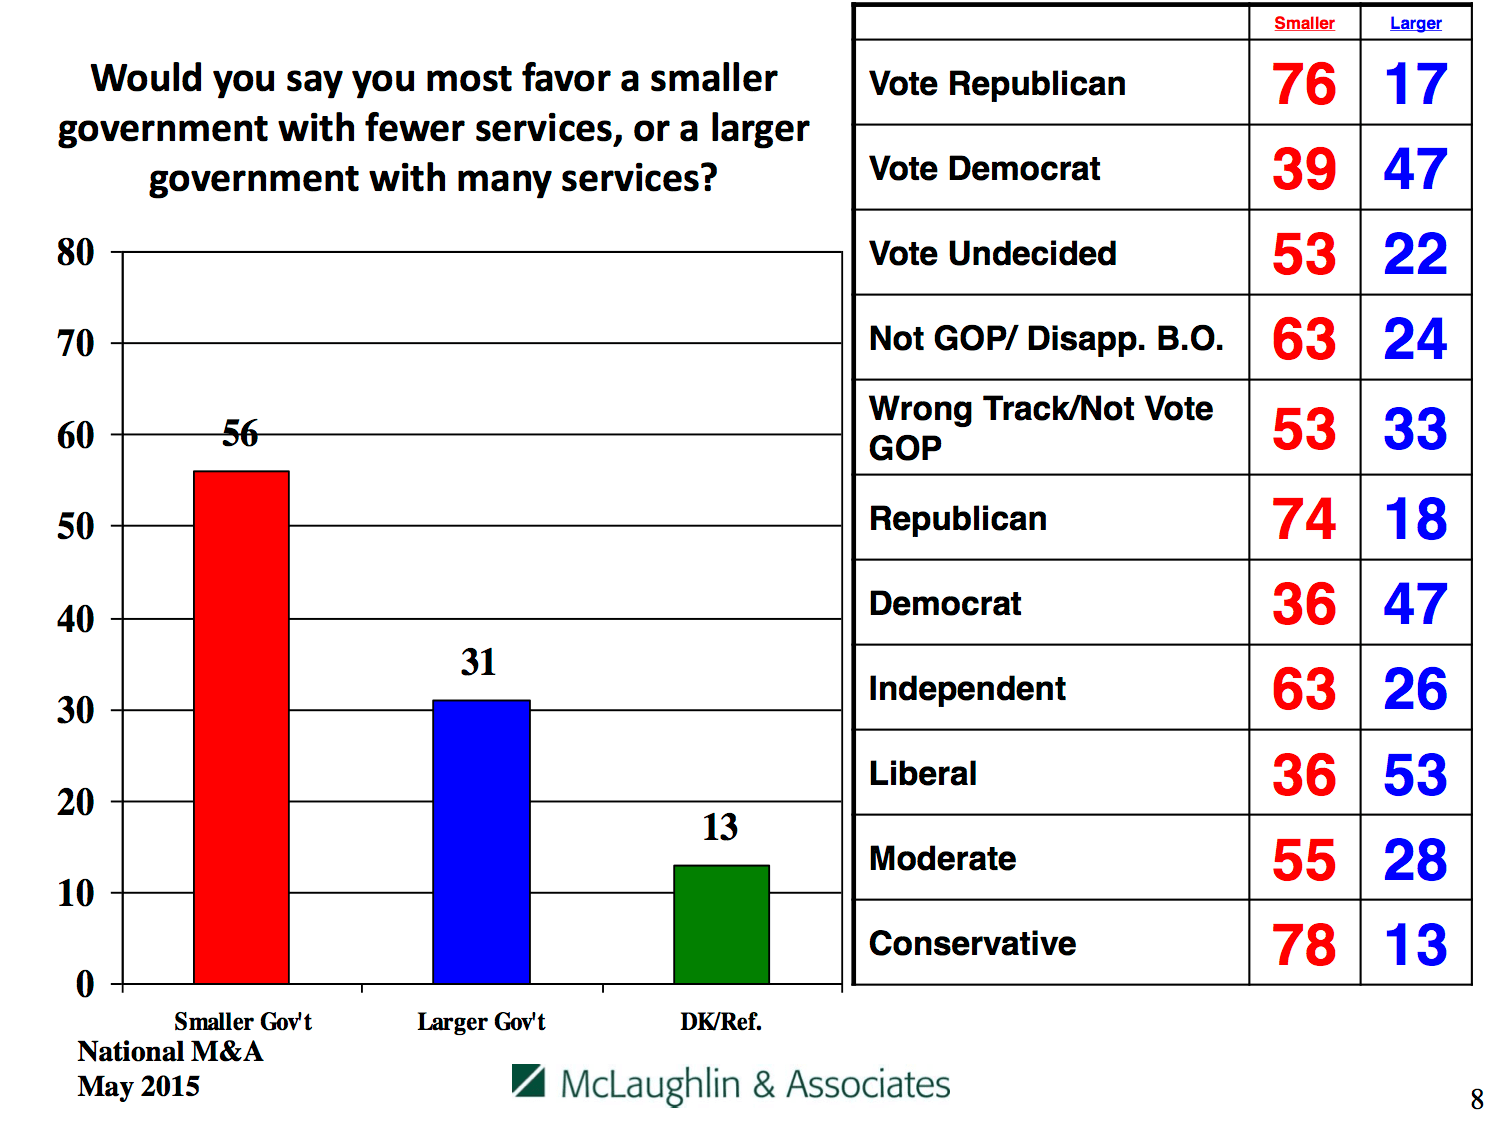 Who favors smaller government vs. who favors larger government, by party and affiliation